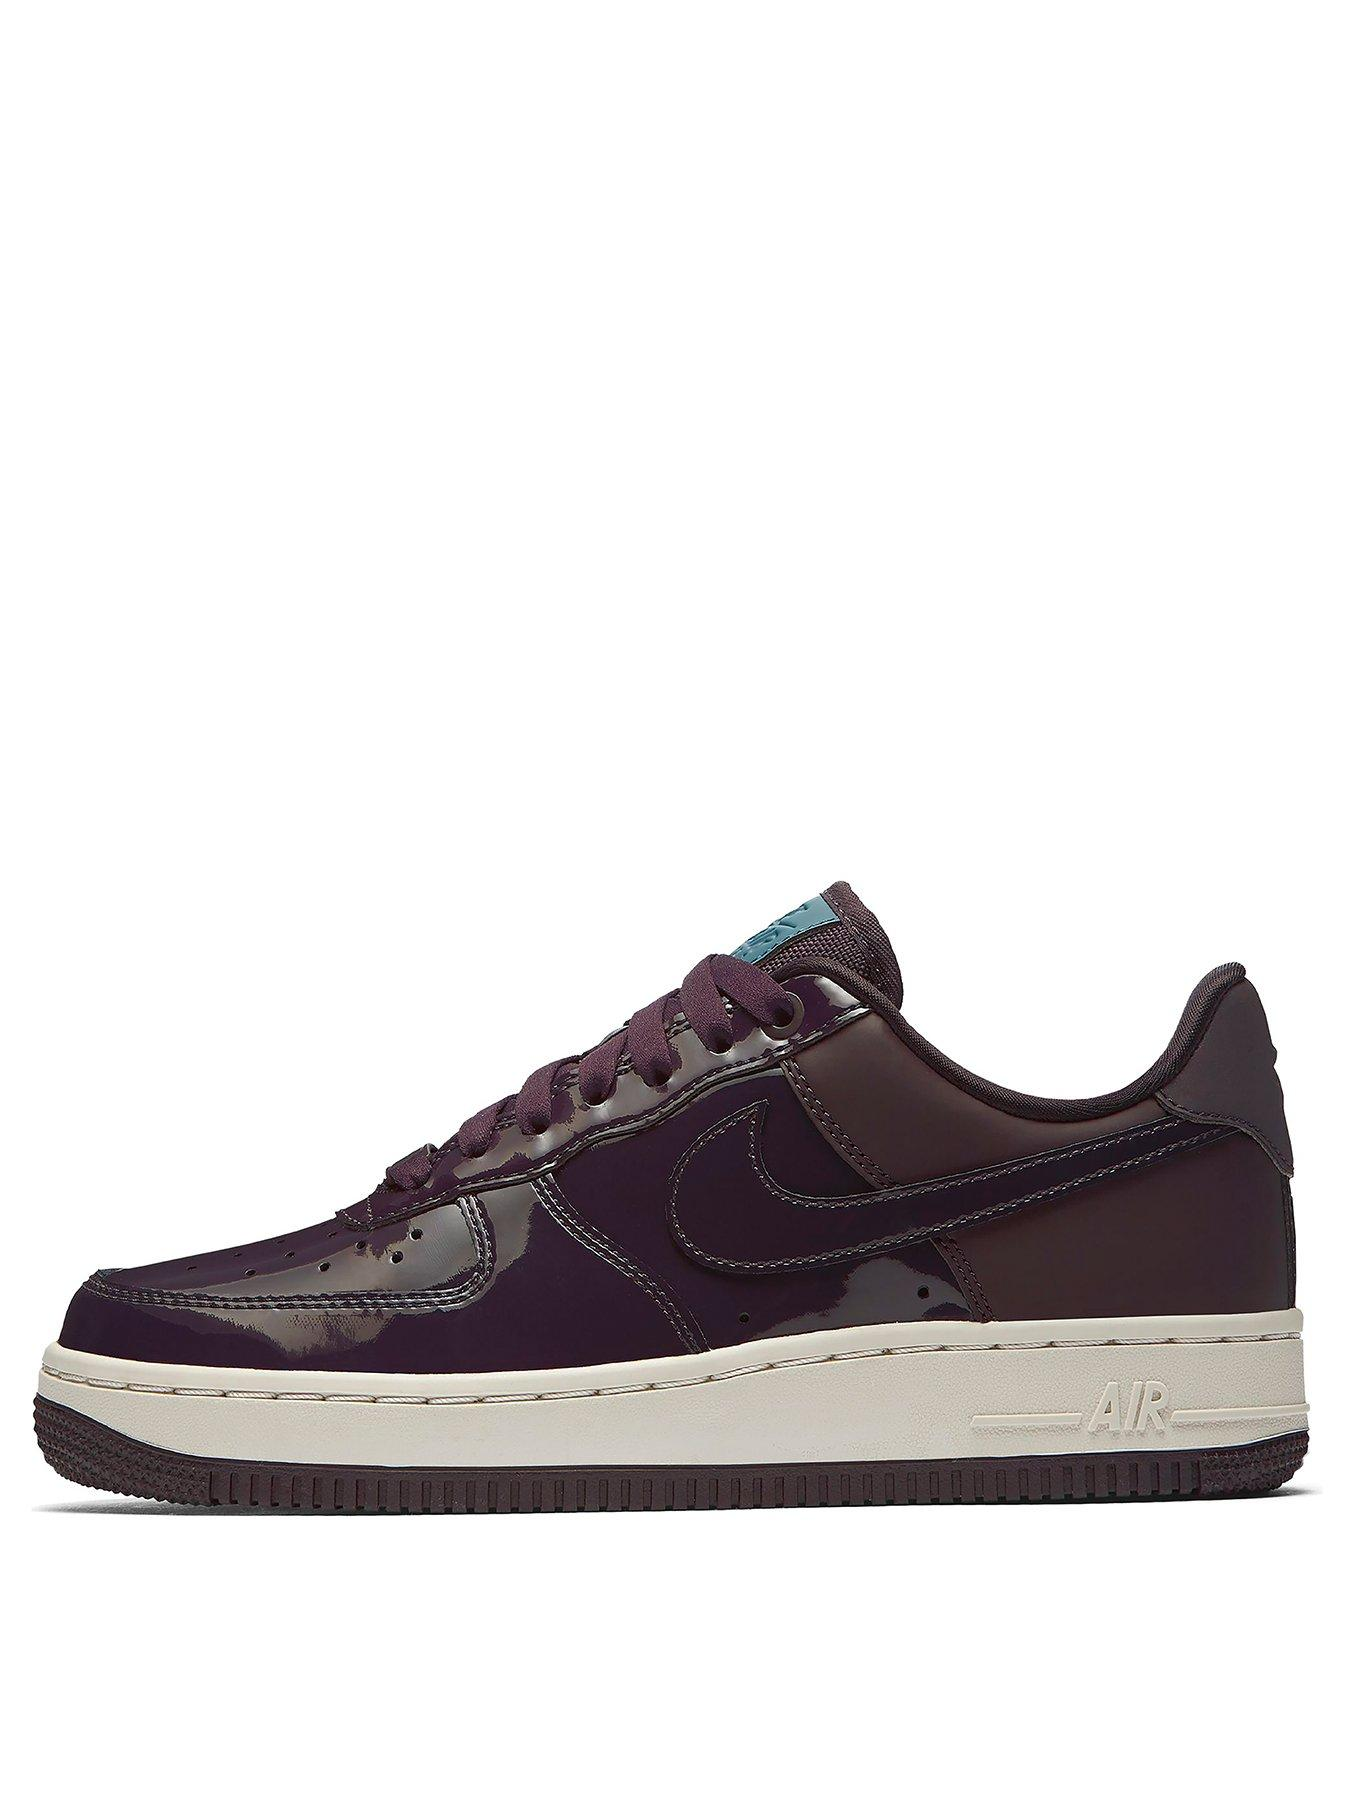 ... sneakers 258ae c5494  wholesale nike air force 1 07 se premium  burgundynbsp 003fb 25bb2 642f2563e